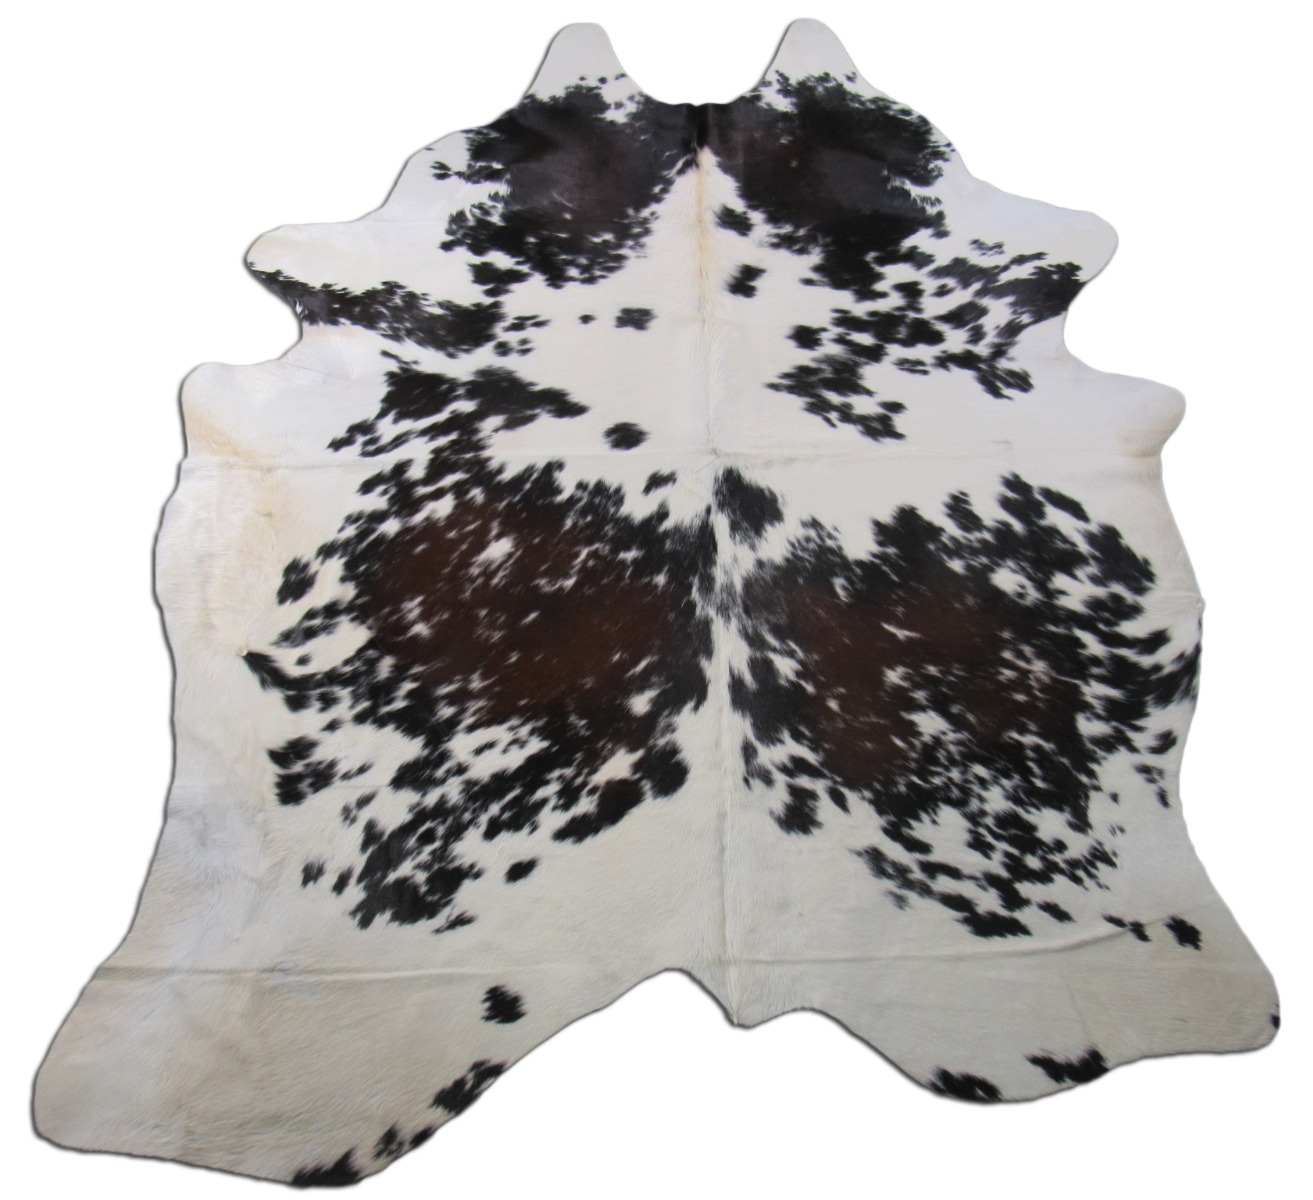 A-1368 Tricolor Speckled Cowhide Rug Size: 8' X 6'